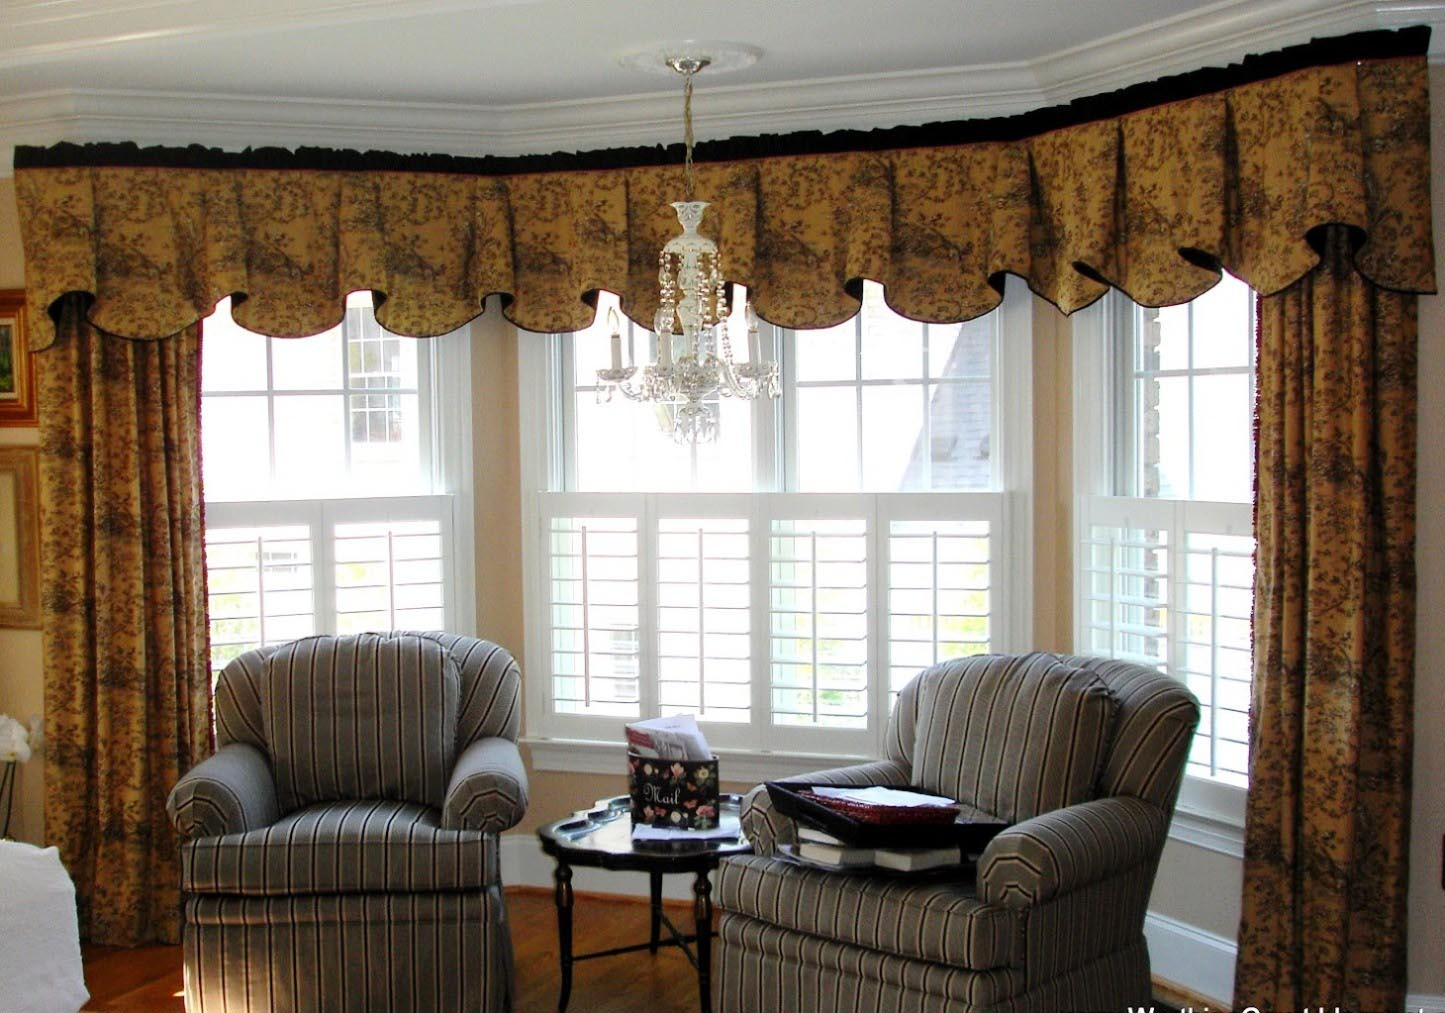 Valance Curtains for Living Room